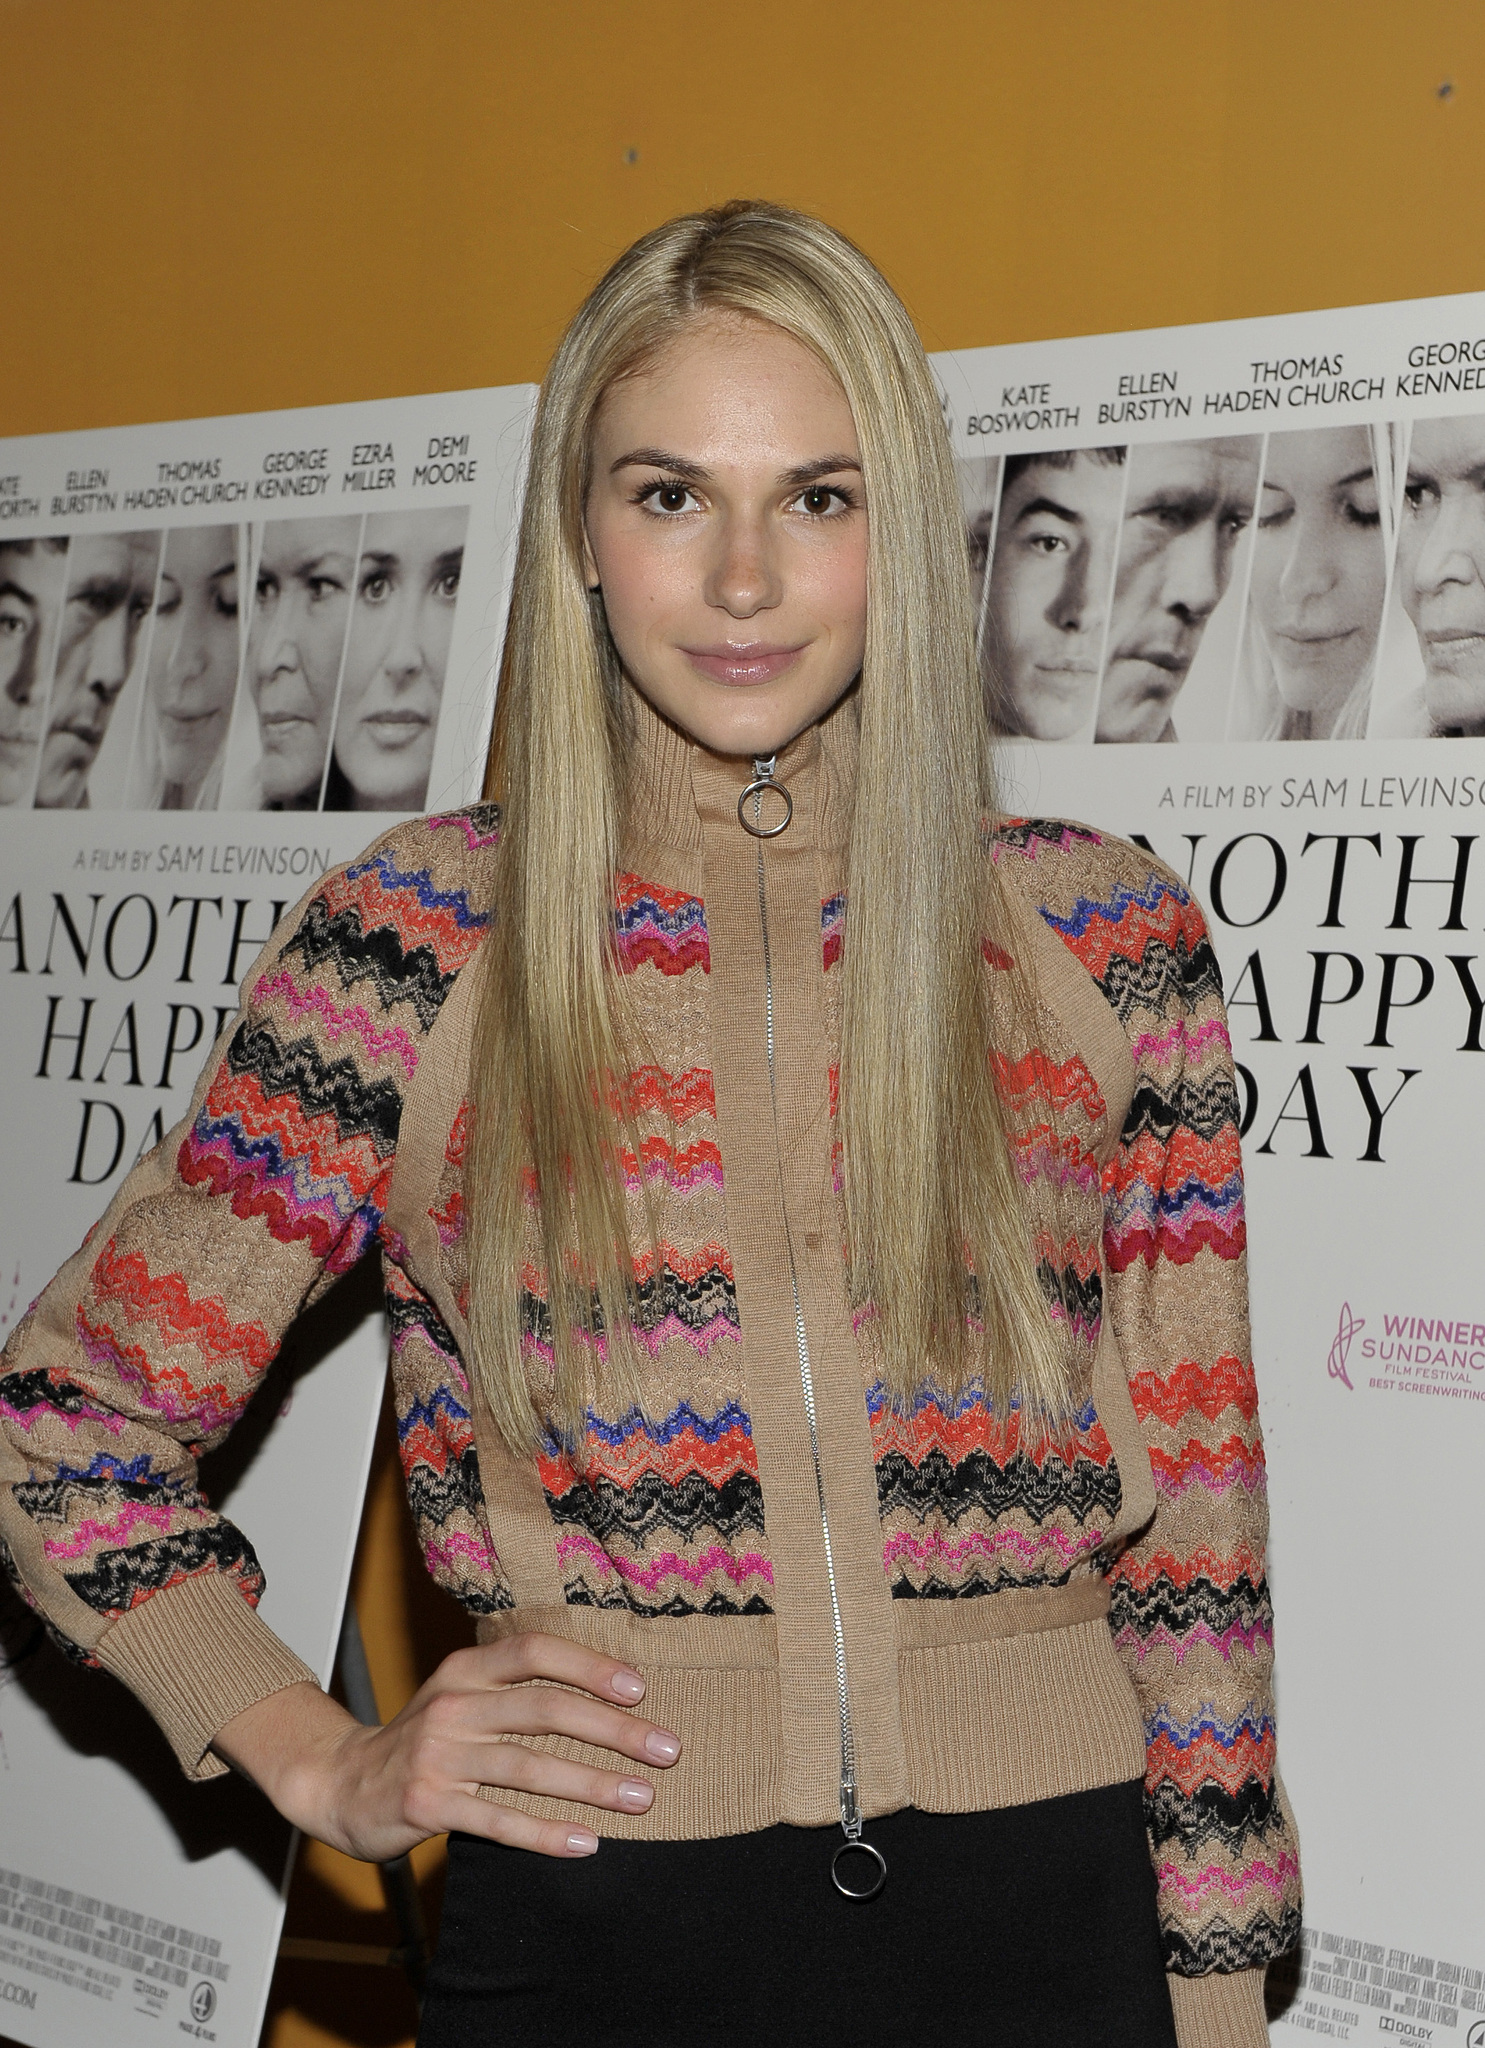 Jennifer Missoni at an event for Another Happy Day (2011)